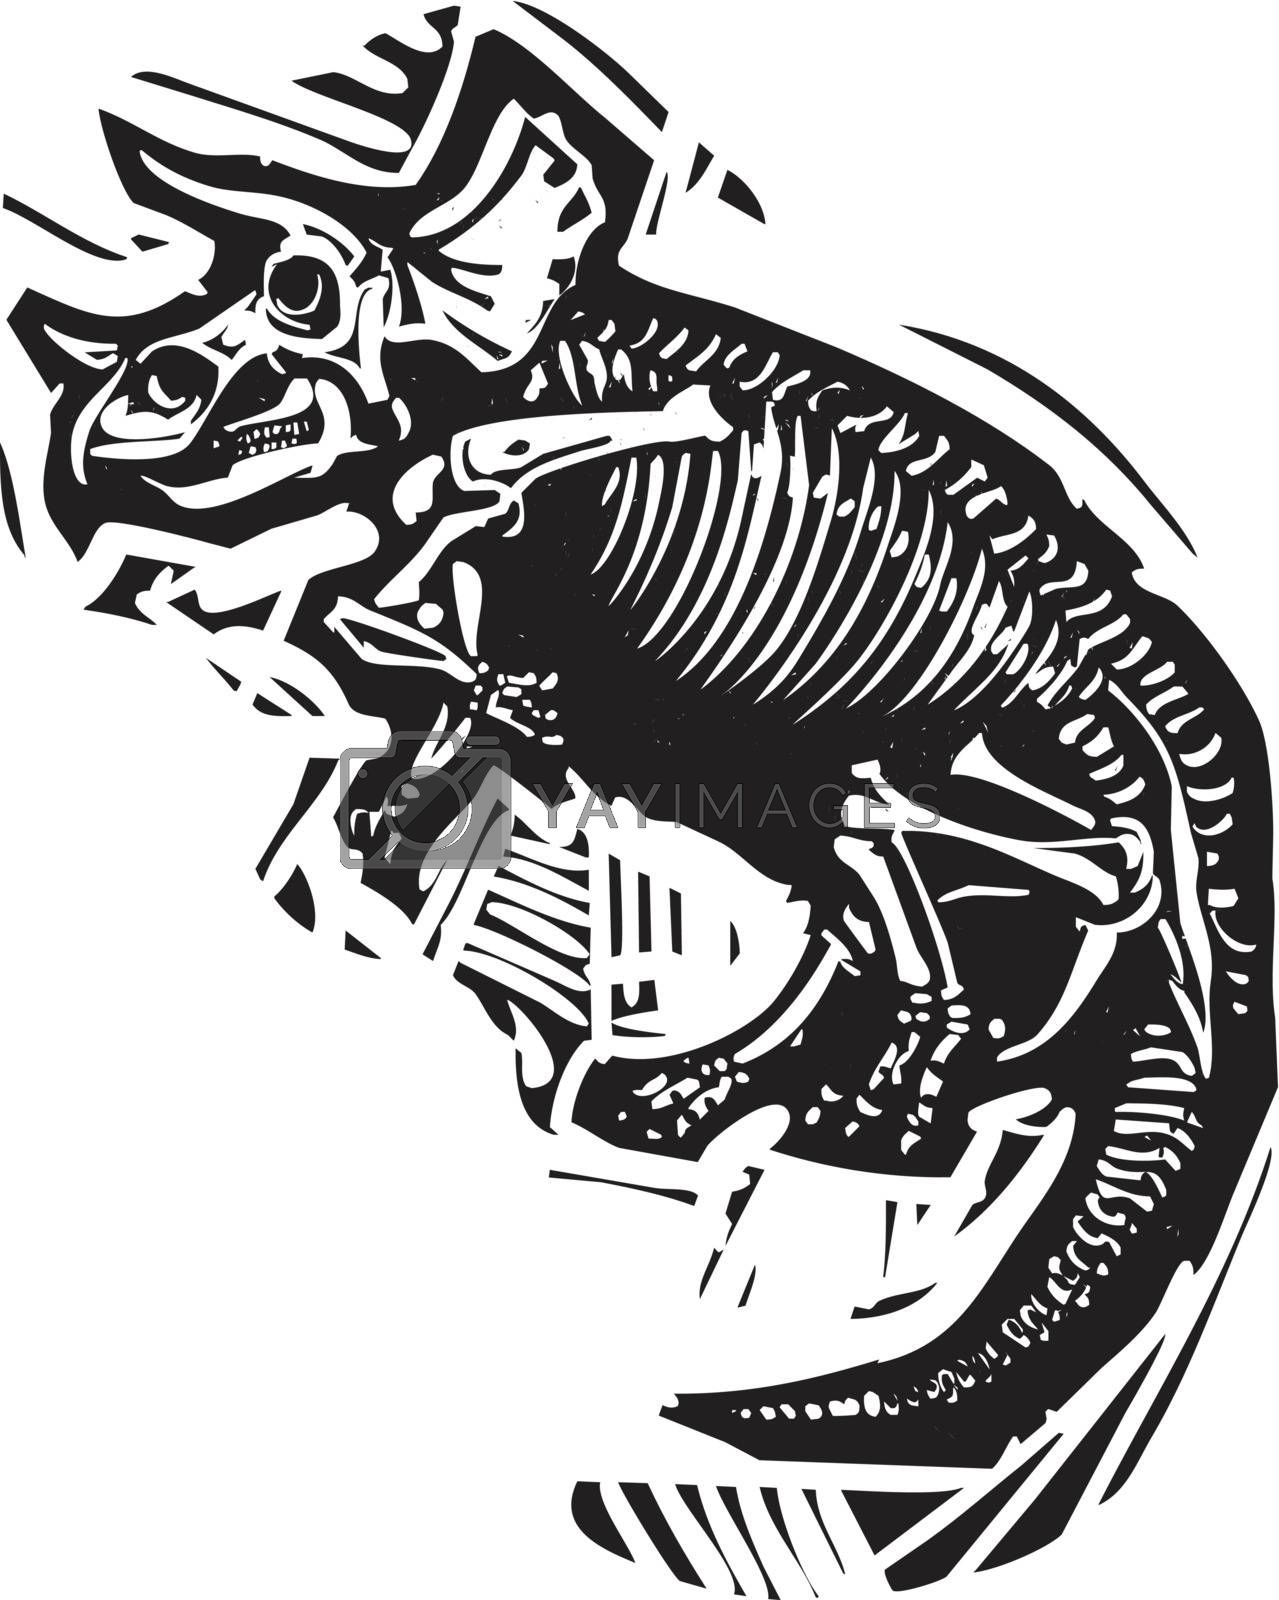 Woodcut style image of a fossil of a Triceratops dinosaur skeleton